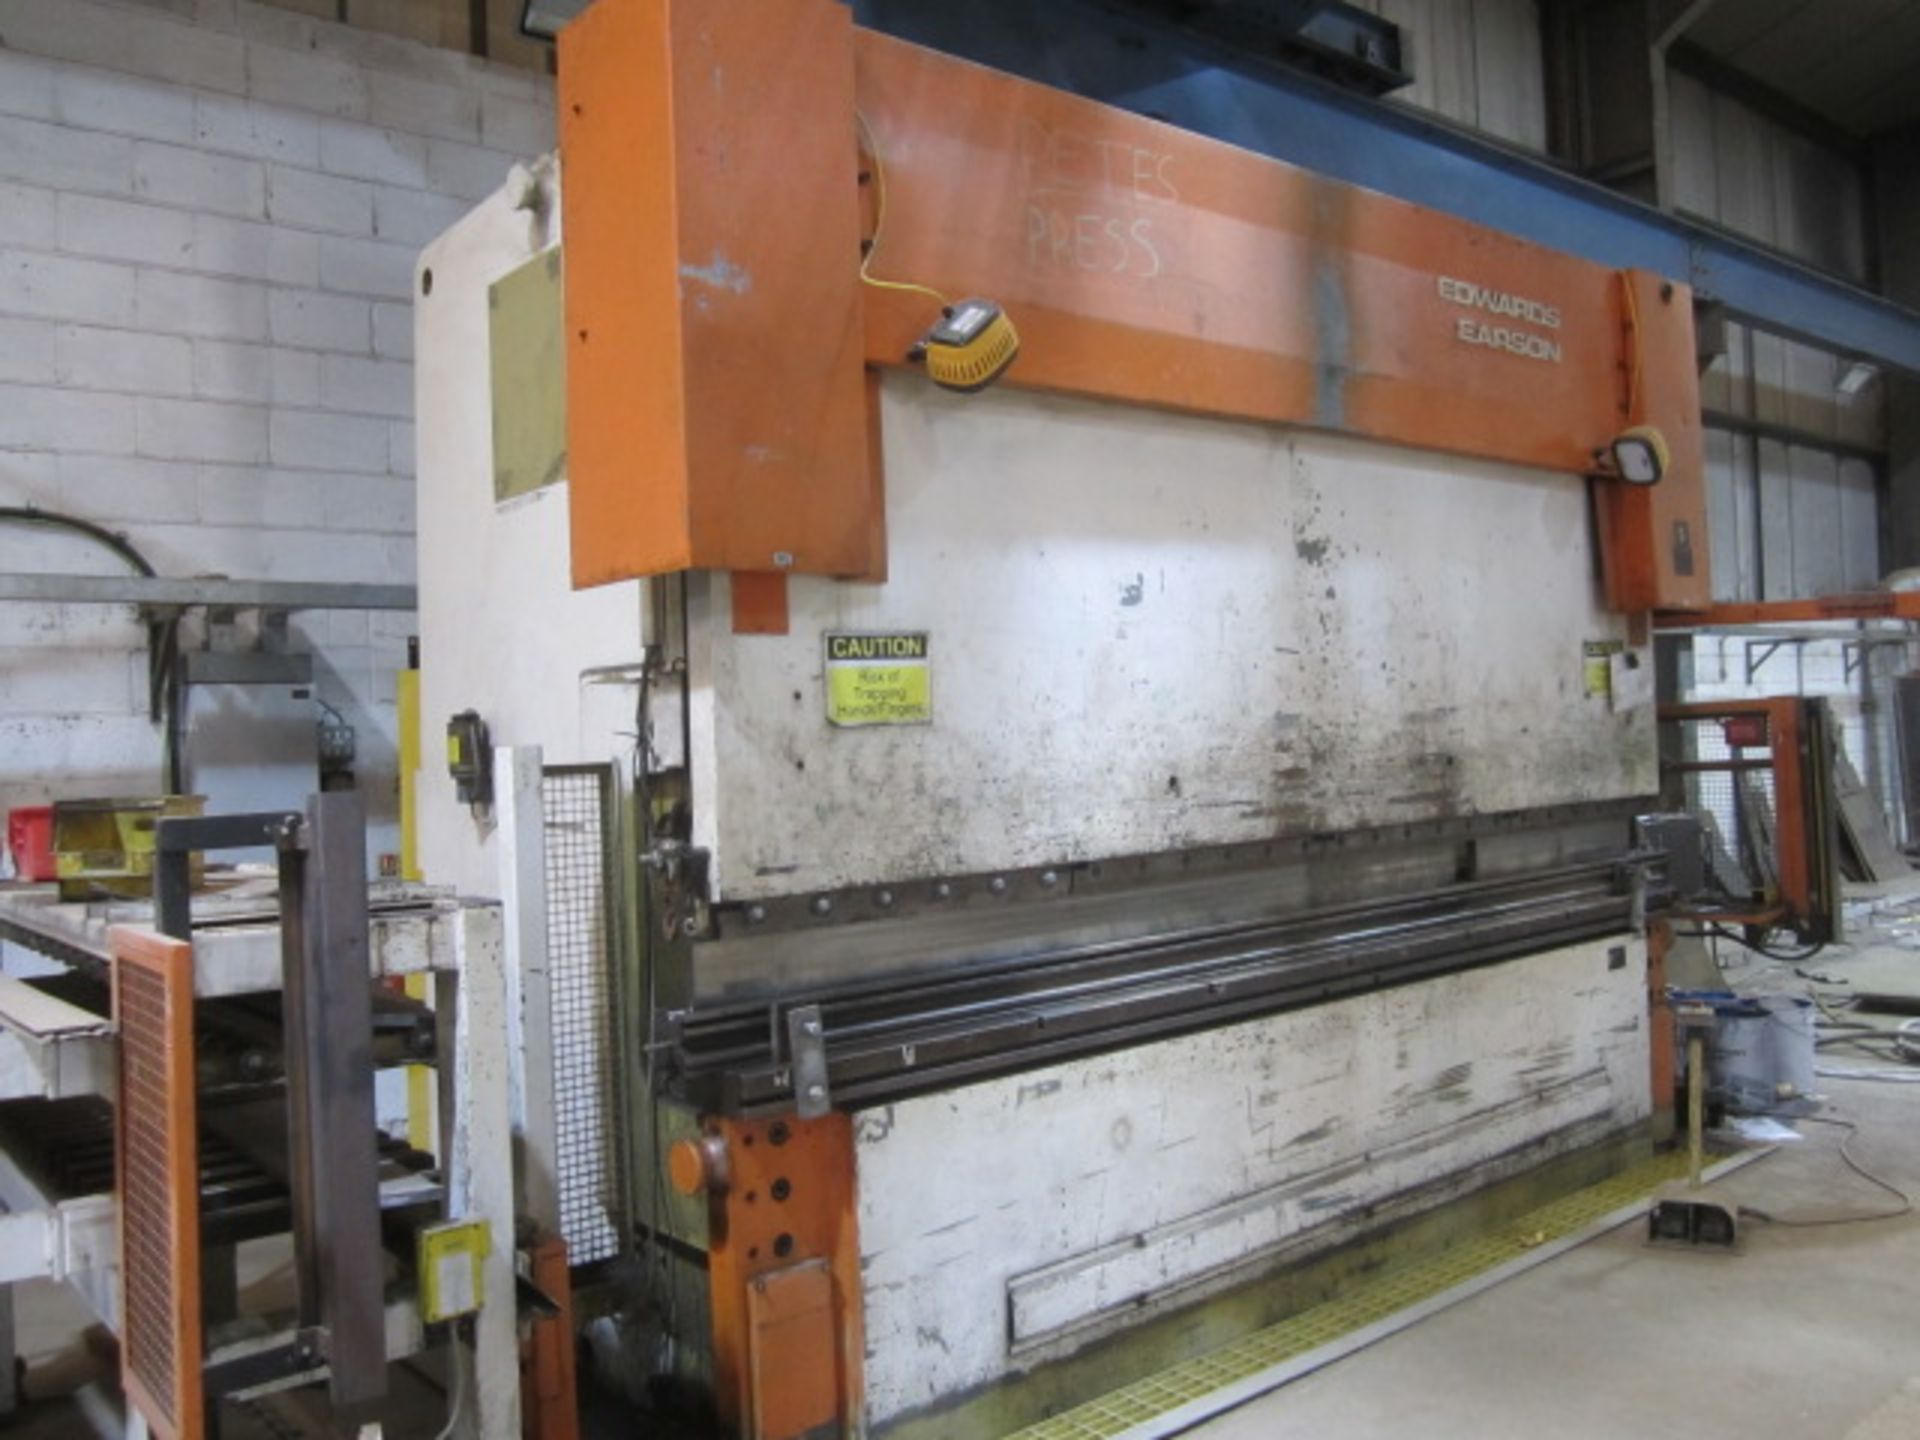 Edward Pearson 300 ton x 4100mm hydraulic downstroking press brake, model RT 300 x 4100, serial - Image 10 of 10